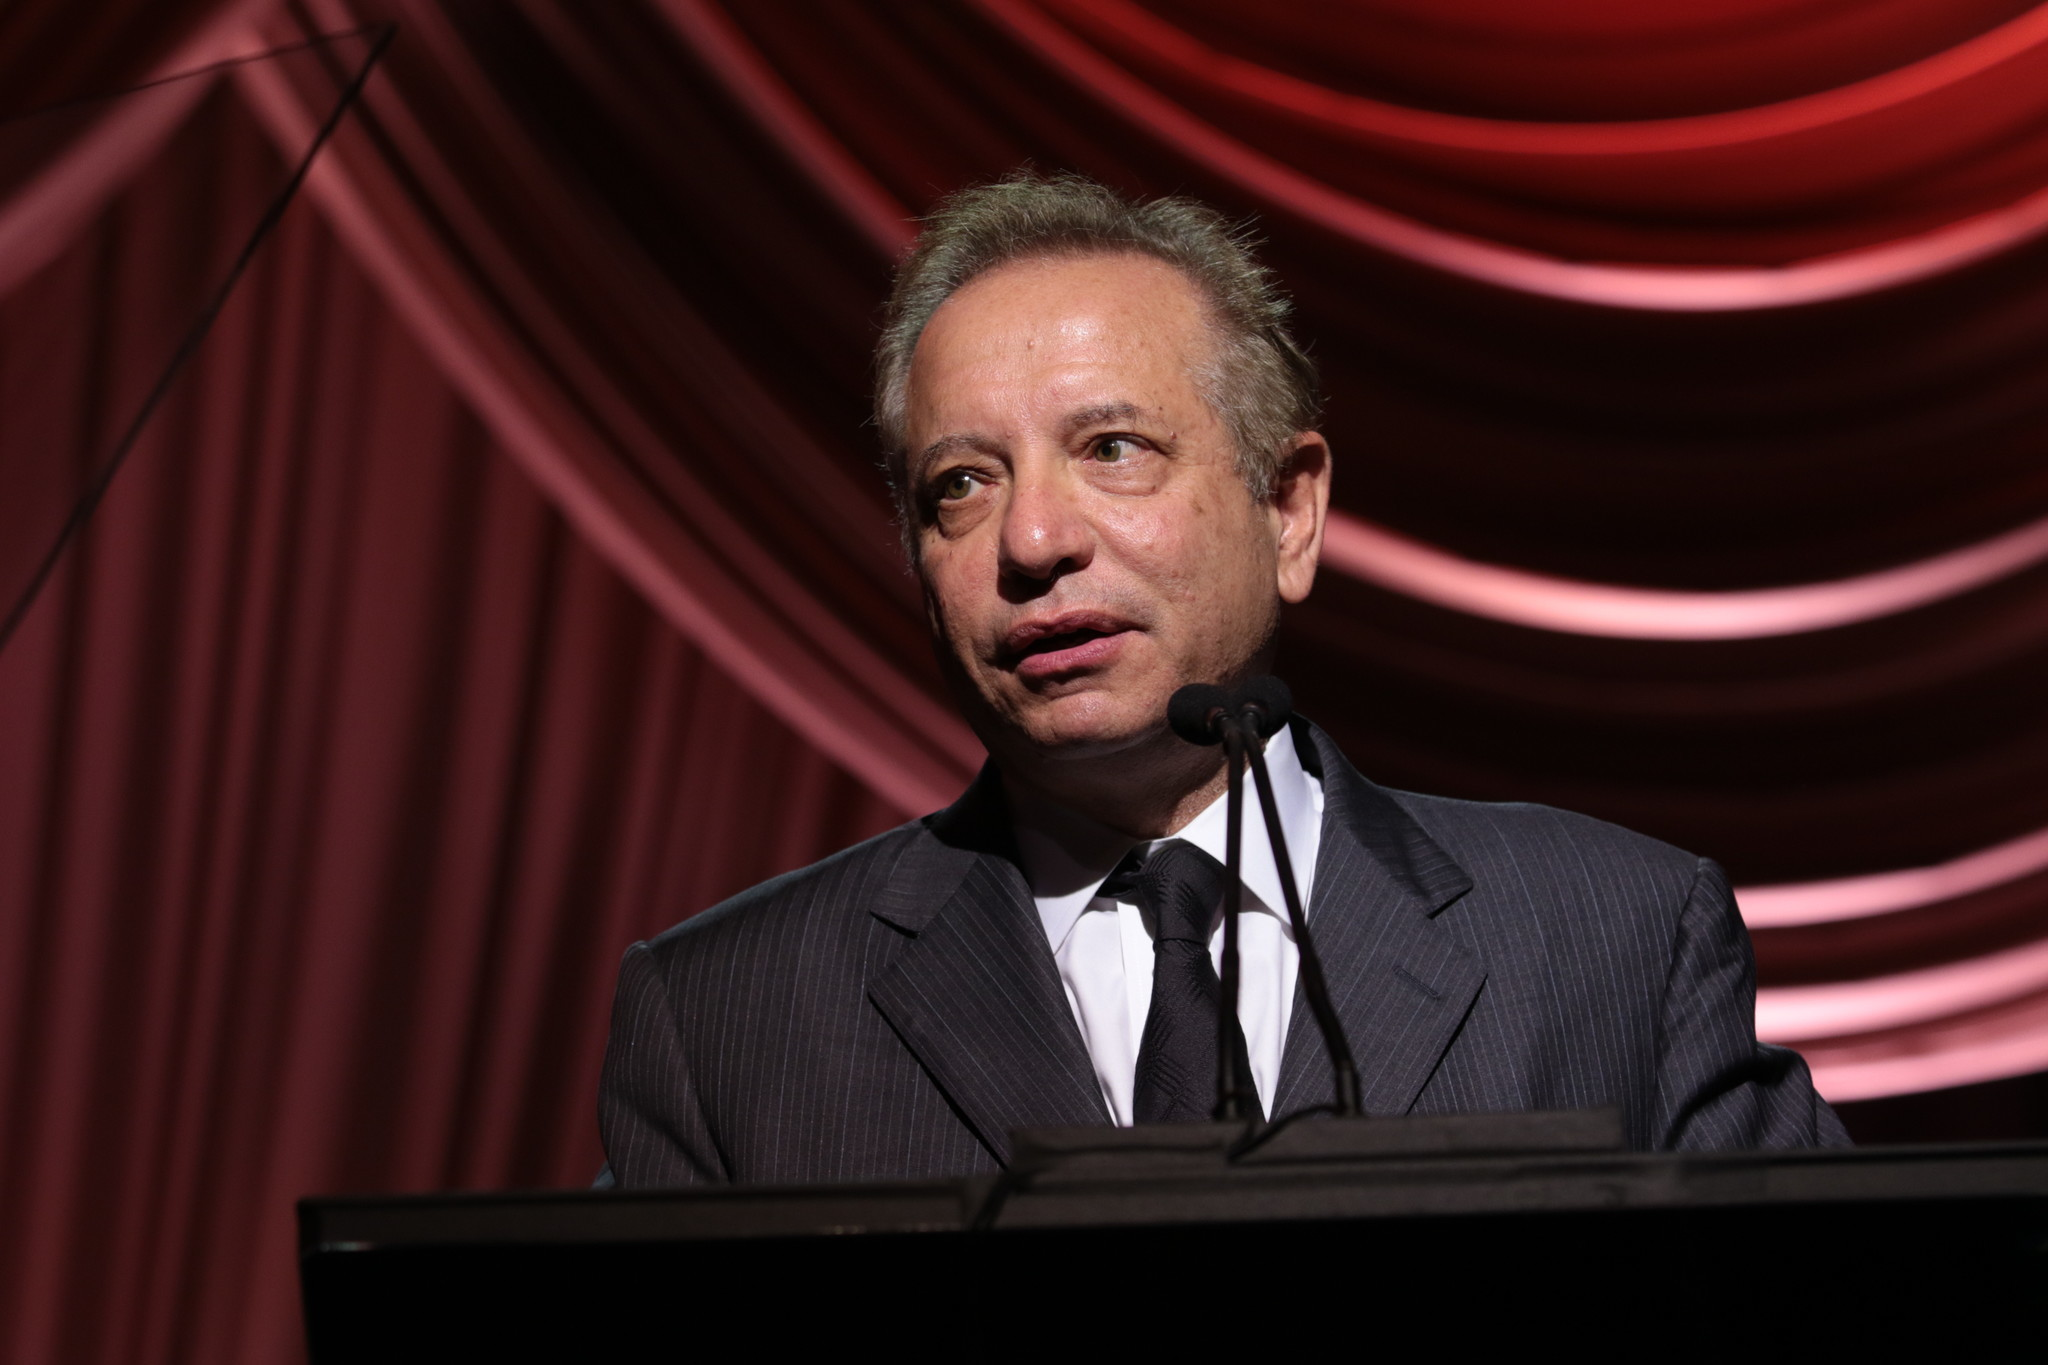 Puliafito, speaking at a USC gala at the Beverly Wilshire Hotel in October 2015, was a prodigious fundraiser, securing more than $1 billion in donations to the university, by his own estimate.